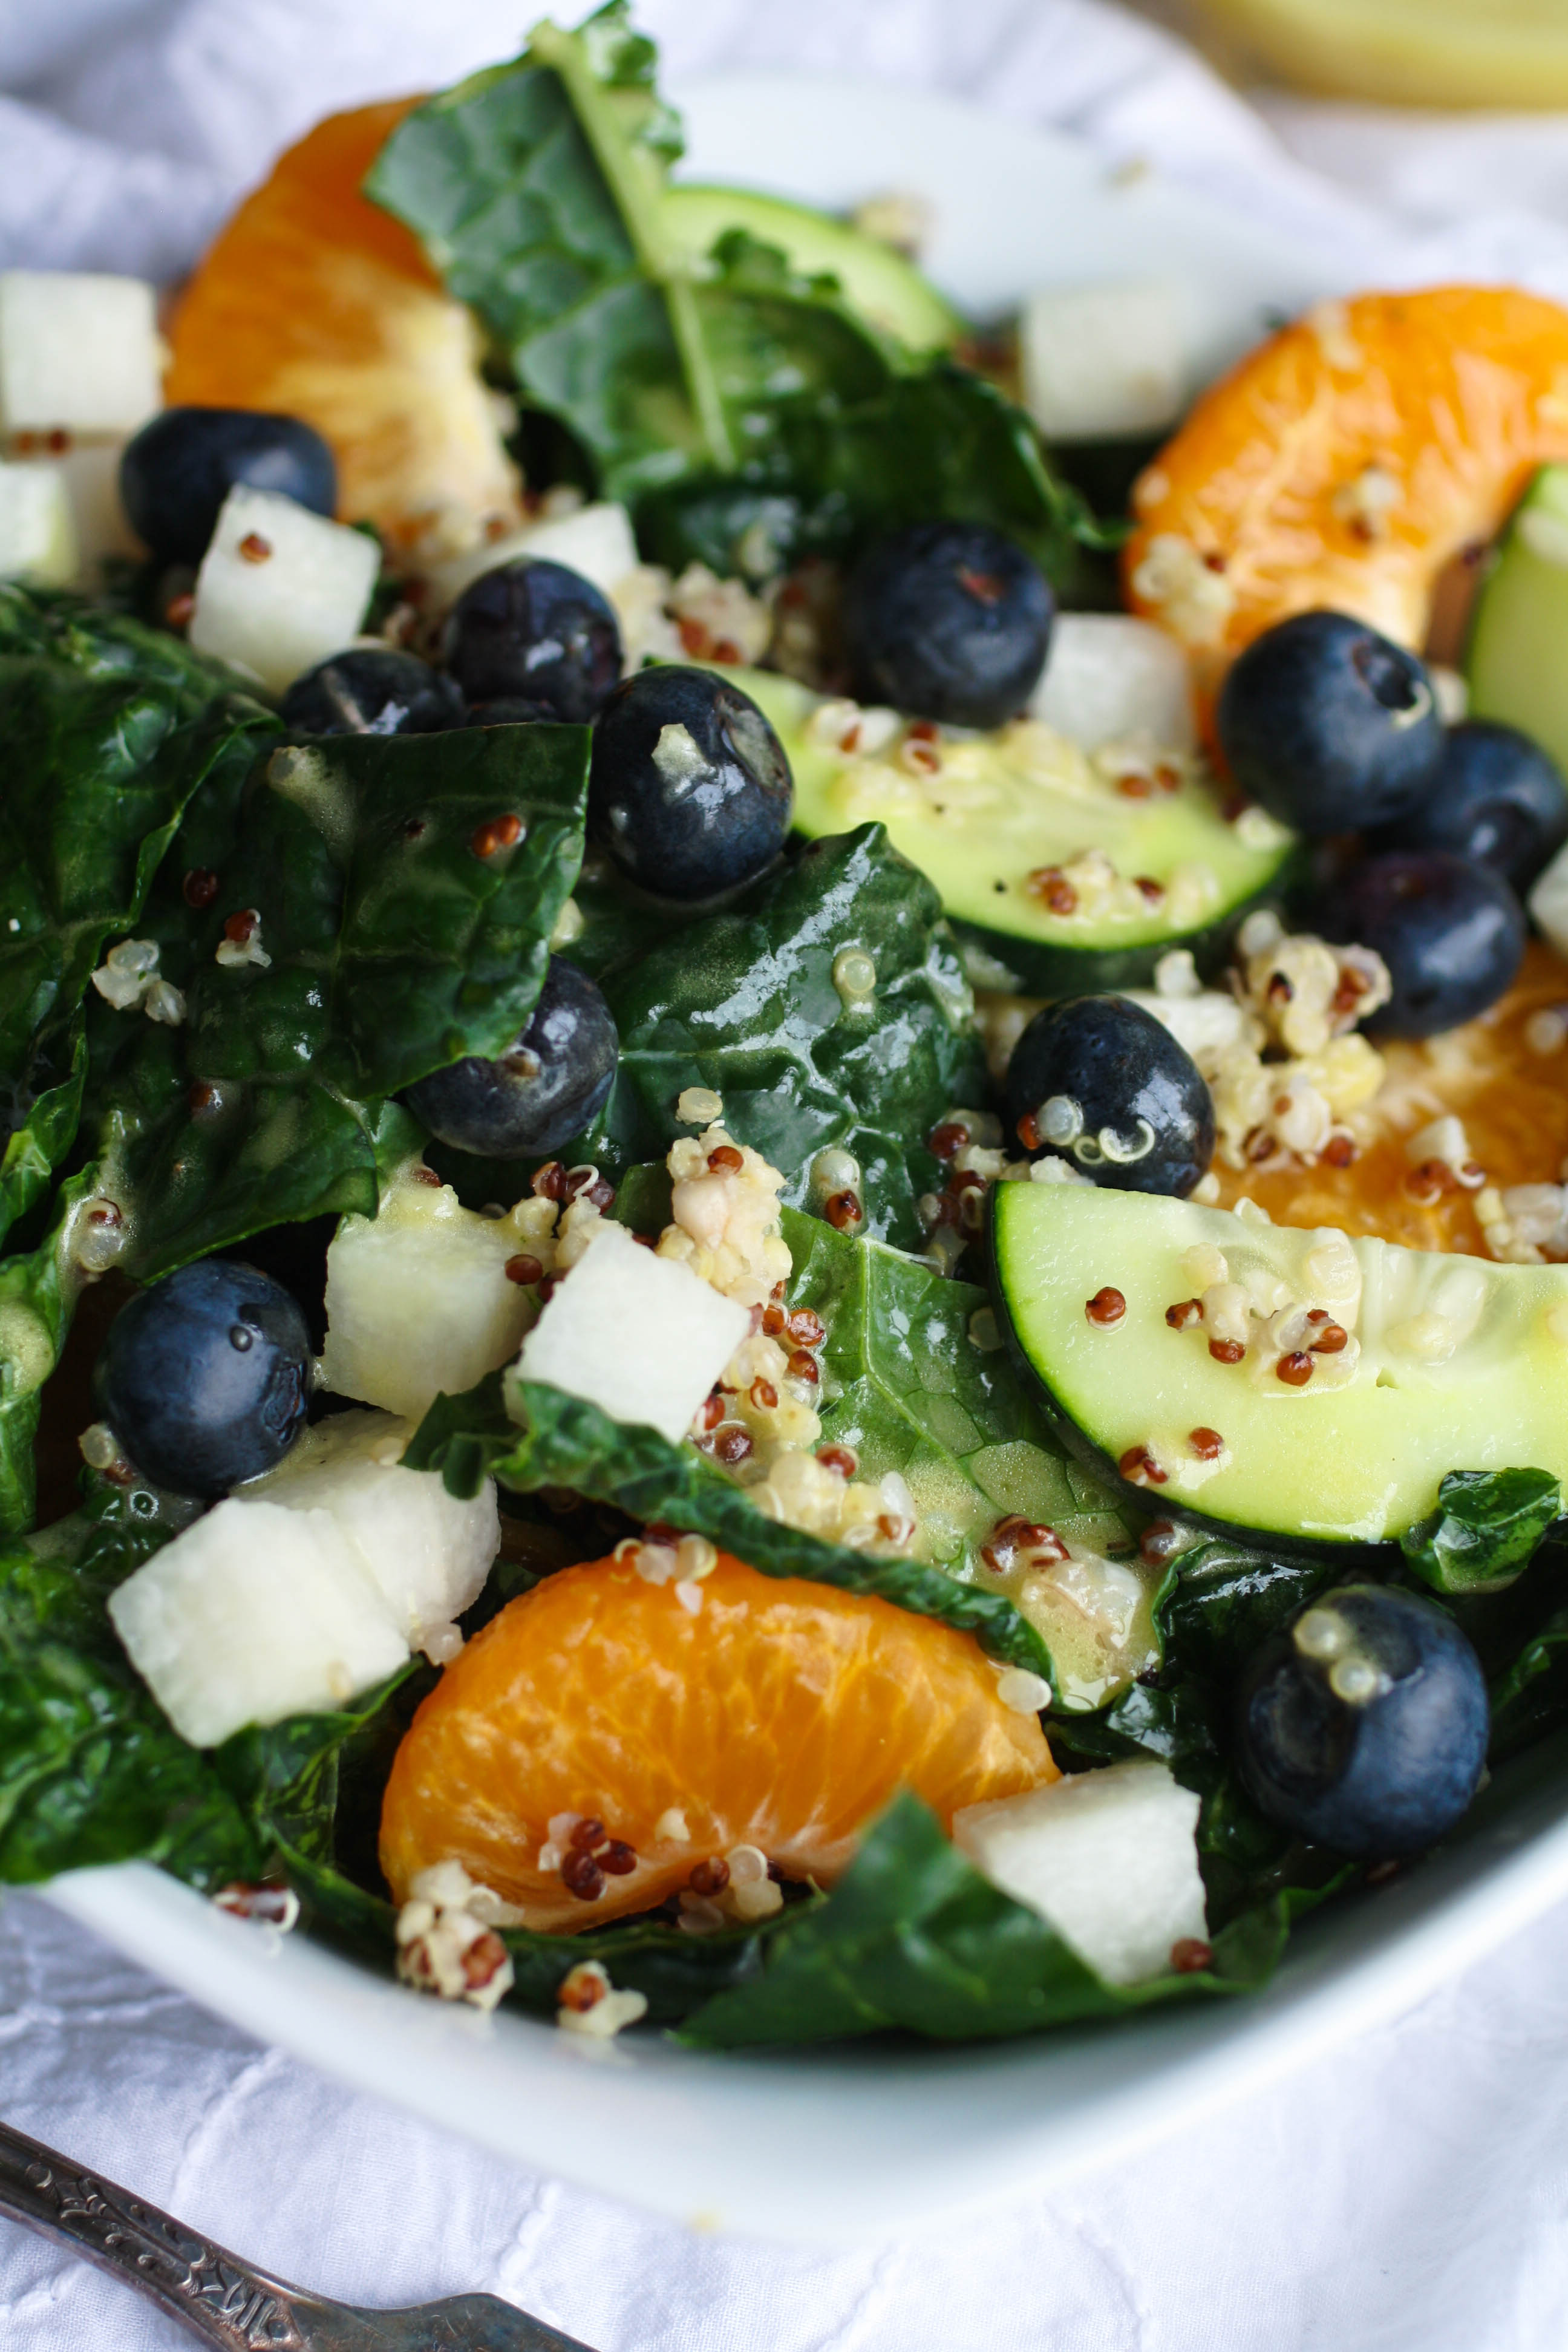 Kale-Quinoa Salad with Orange Vinaigrette is a salad that's full of goodness! It's an easy salad to make that will be perfect as your next meal!